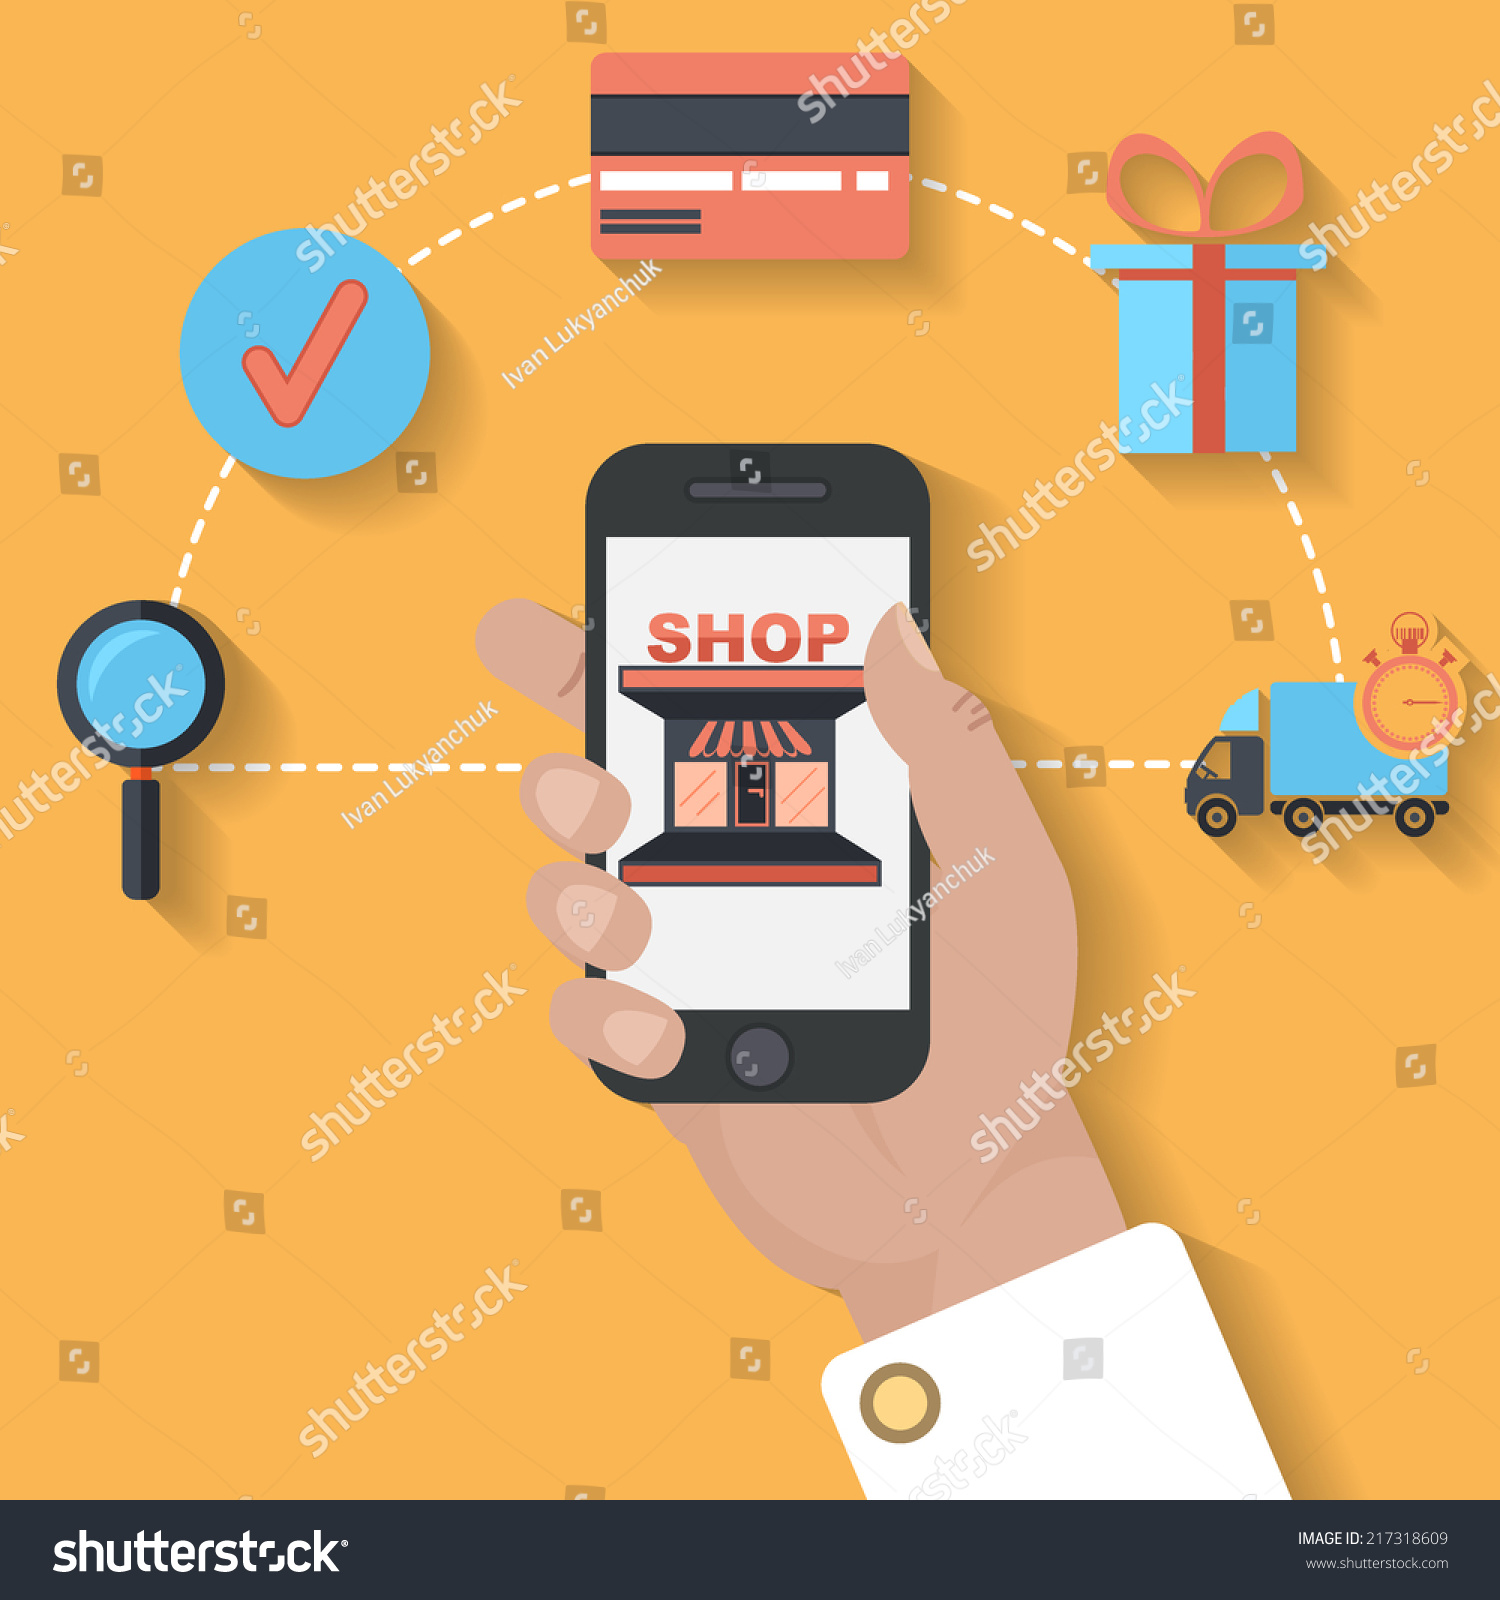 E Commerce Mobili Ecommerce Mobile Payment Concept Flat Design Stock Vector